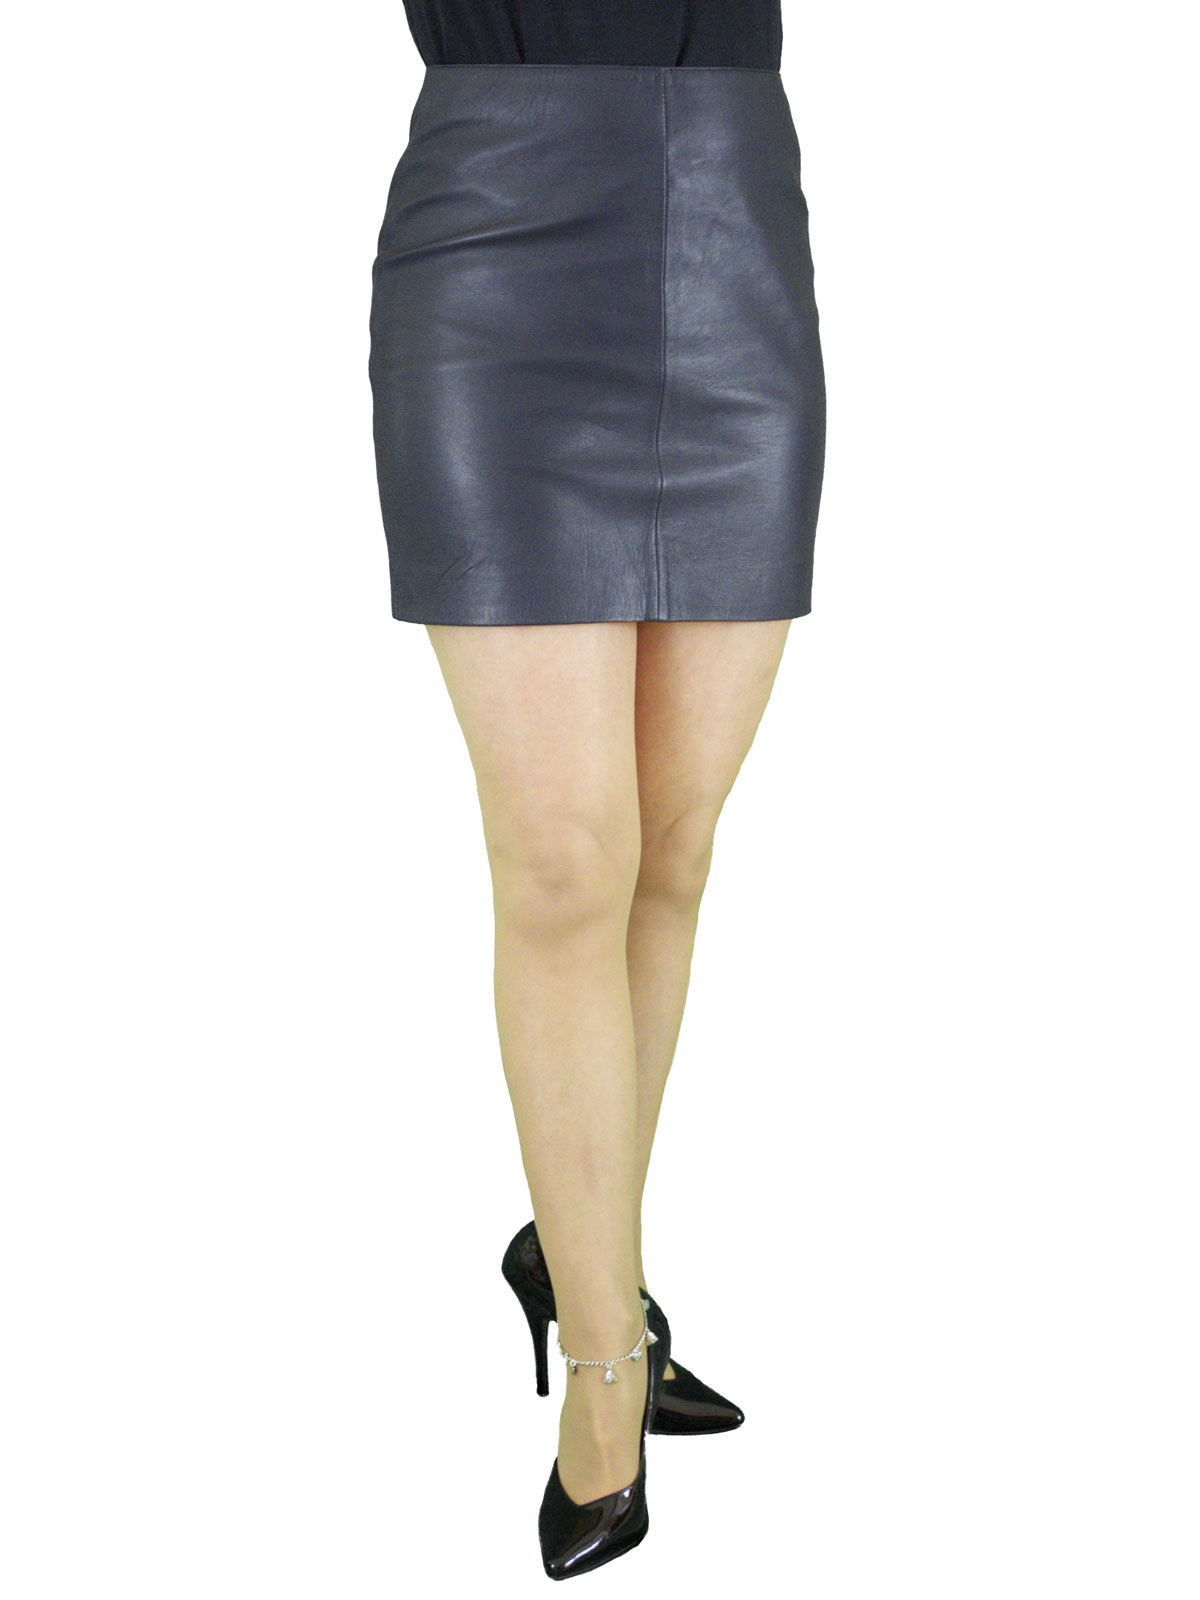 Navy Leather Mini Skirt, classic plain